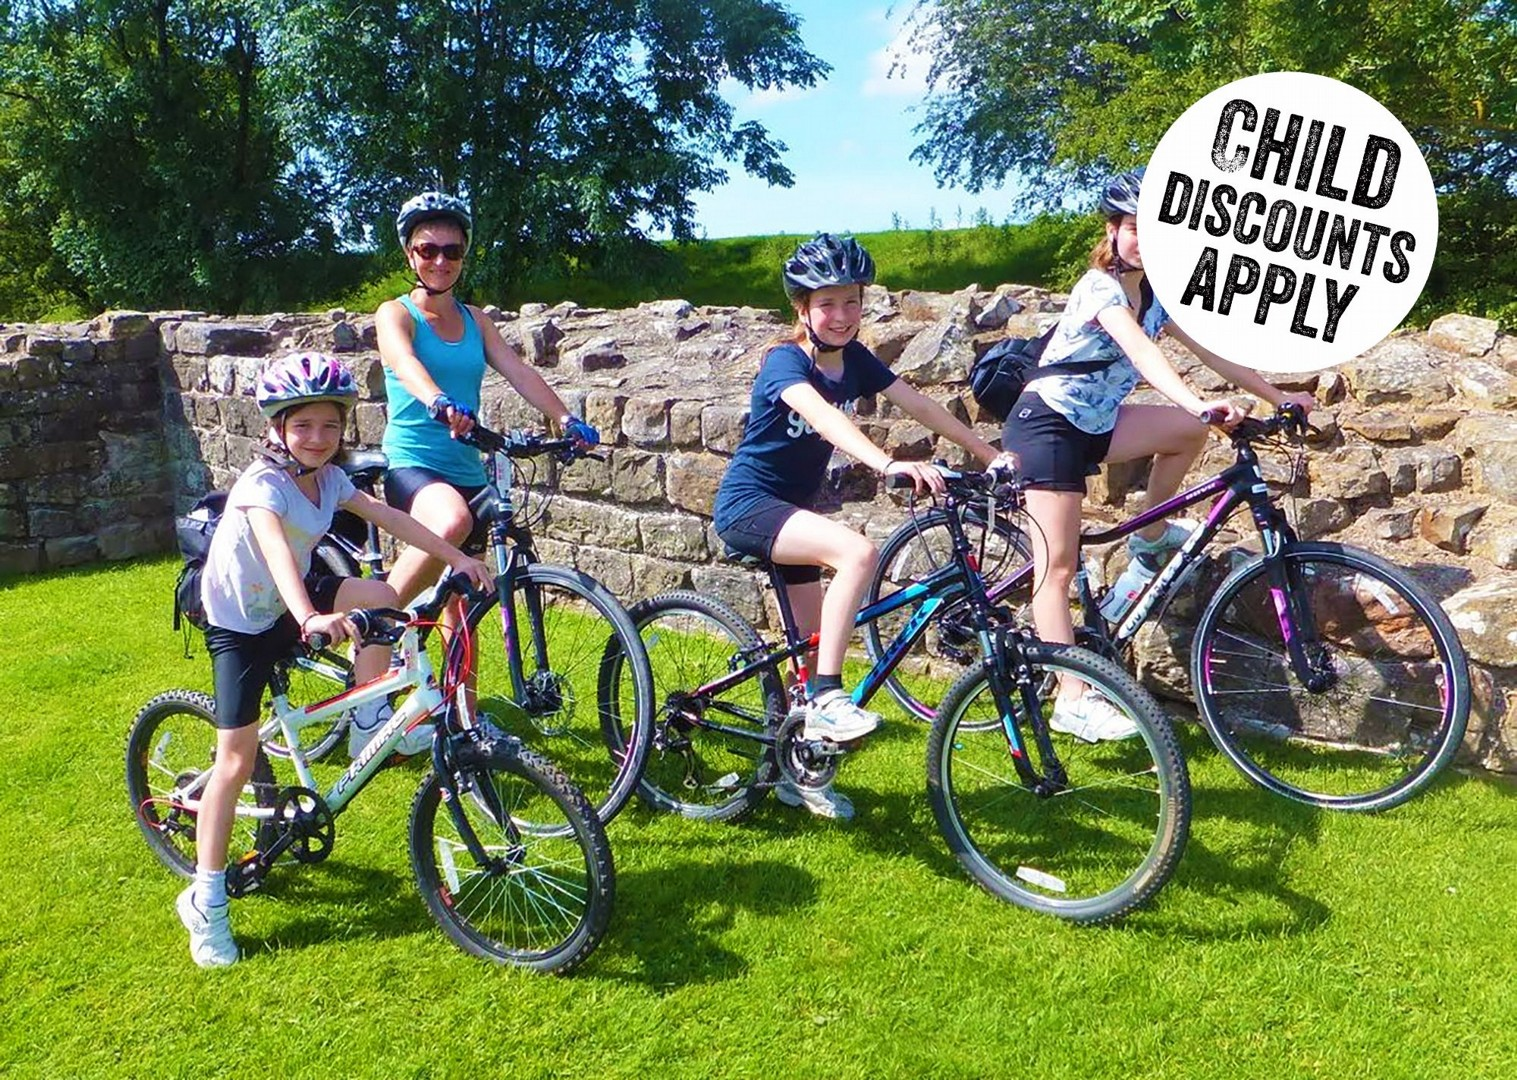 UK - Hadrian's Cycleway - 6 Days Cycling - Self-Guided Family Cycling Holiday copy.jpg - UK - Hadrian's Cycleway - 6 Days Cycling - Self-Guided Family Cycling Holiday - Family Cycling